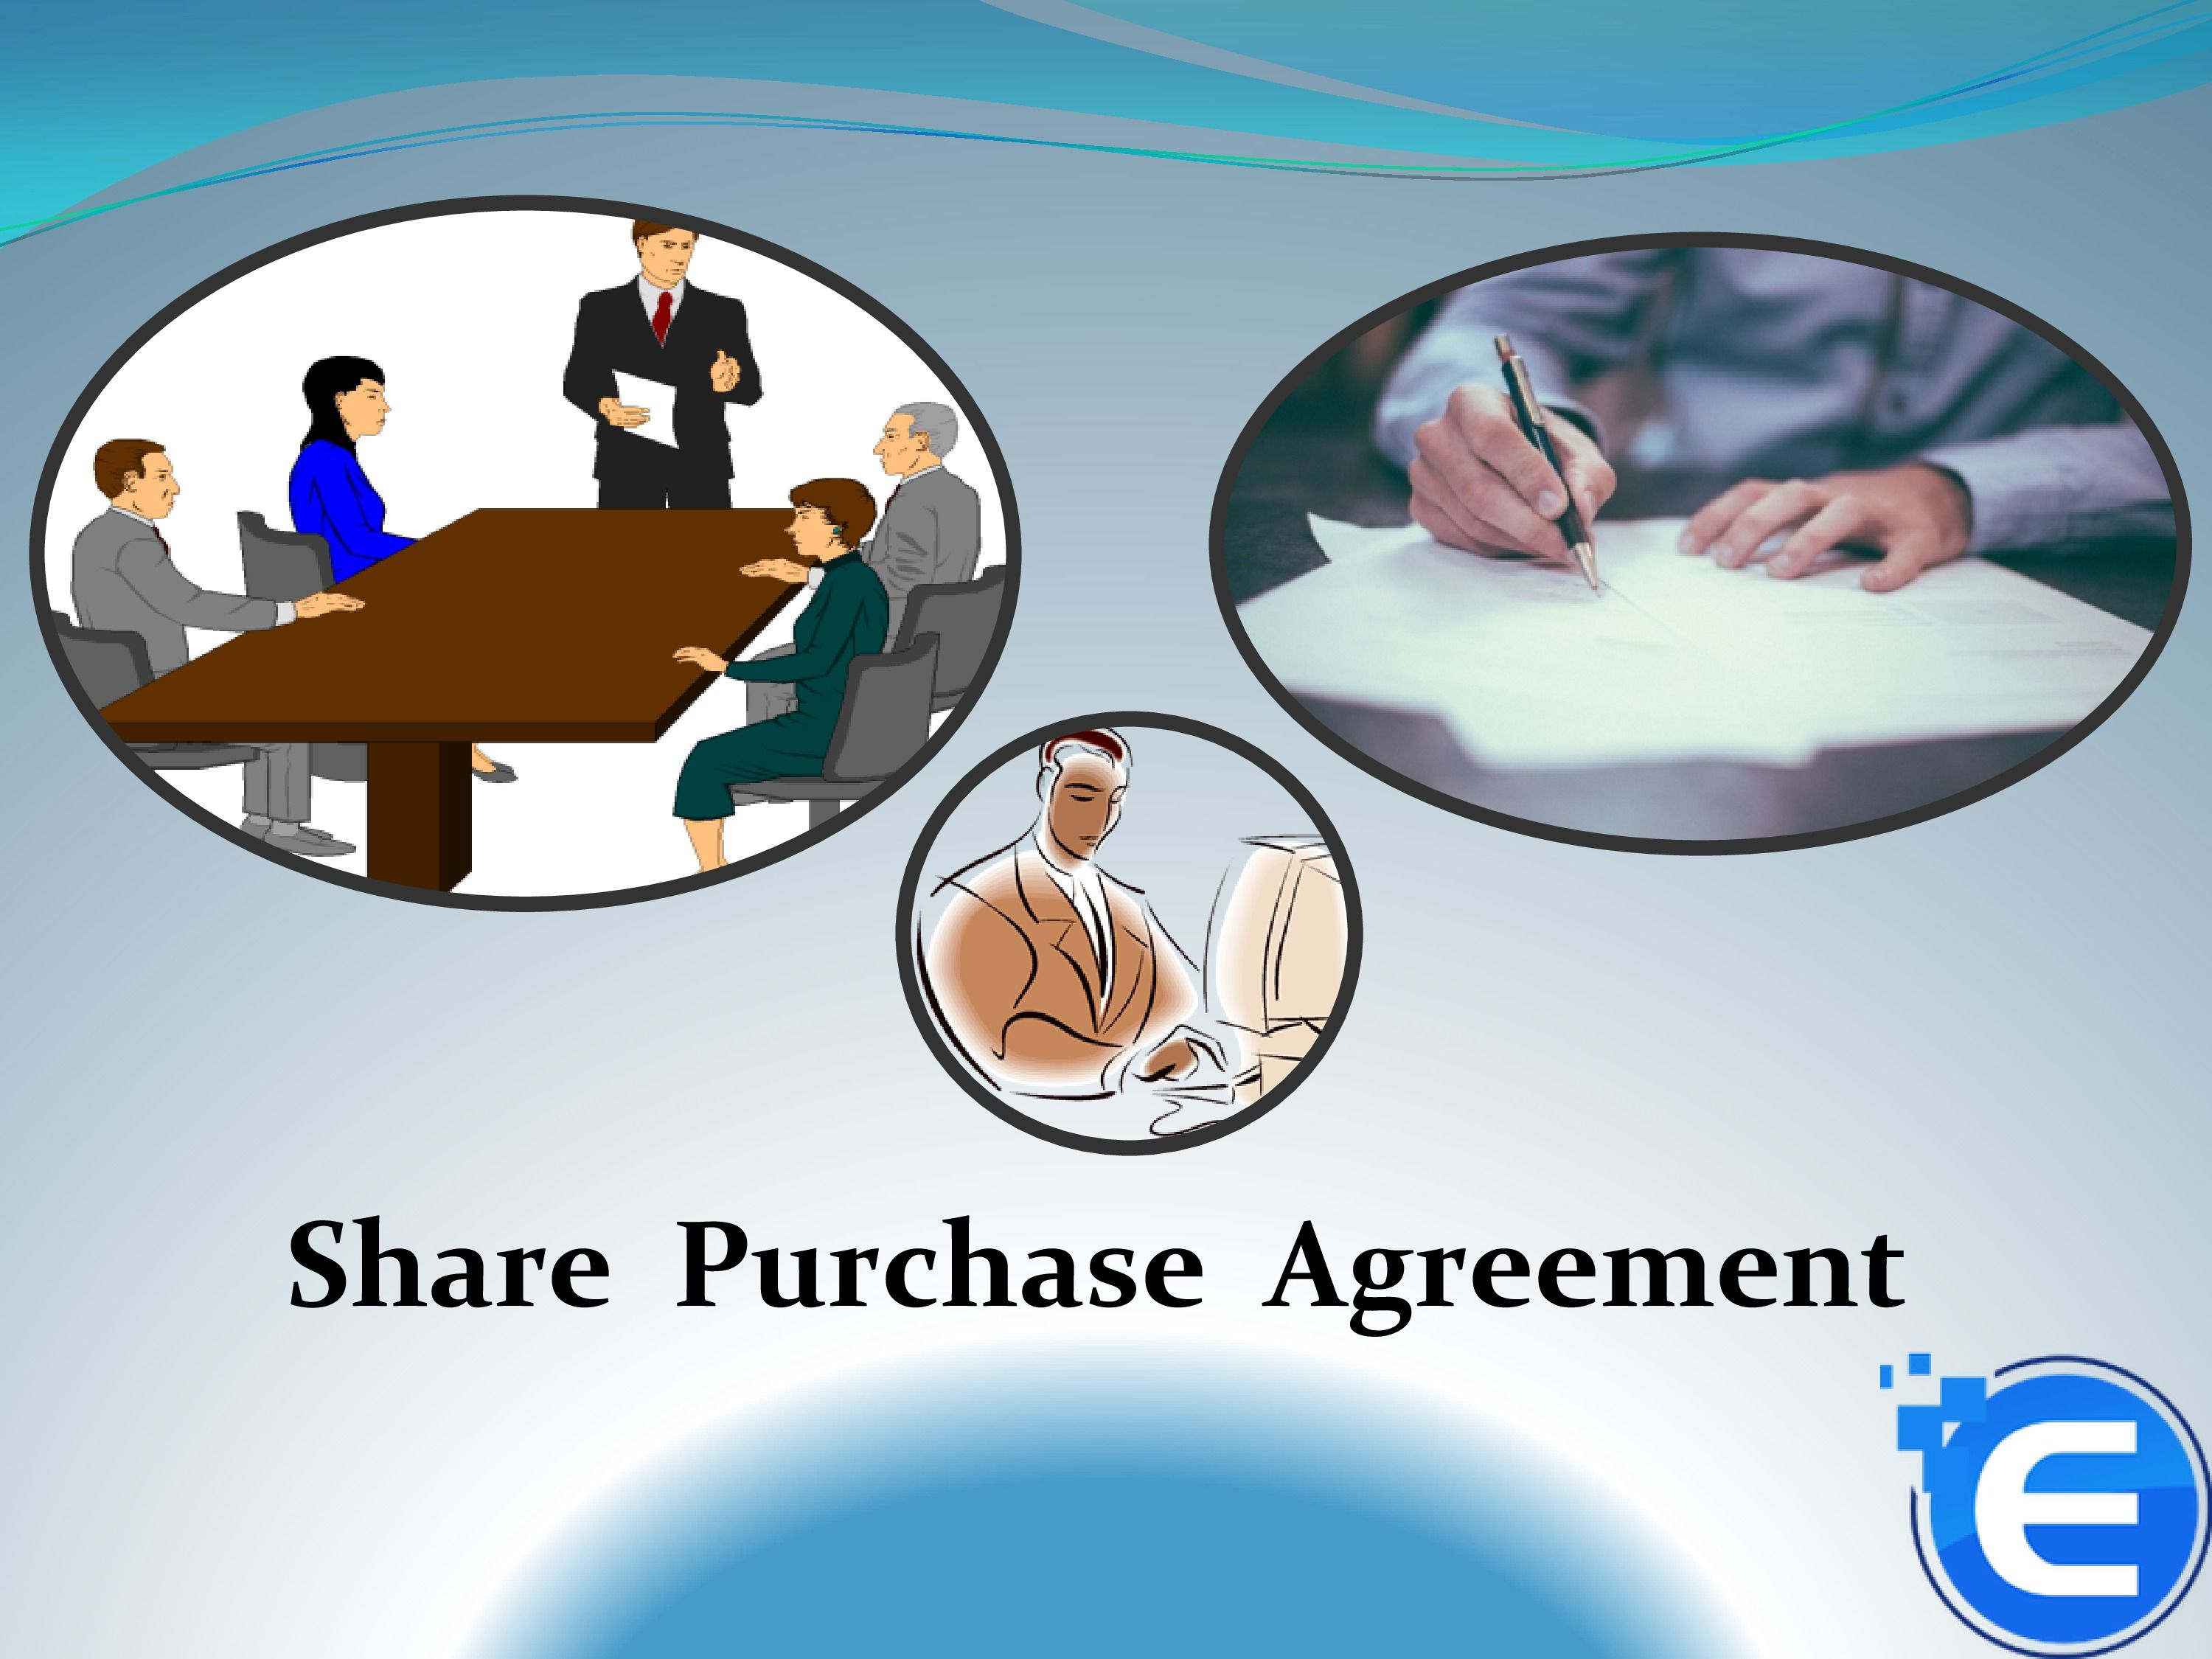 The Share Purchase Agreement Is An Agreement In Which Terms And